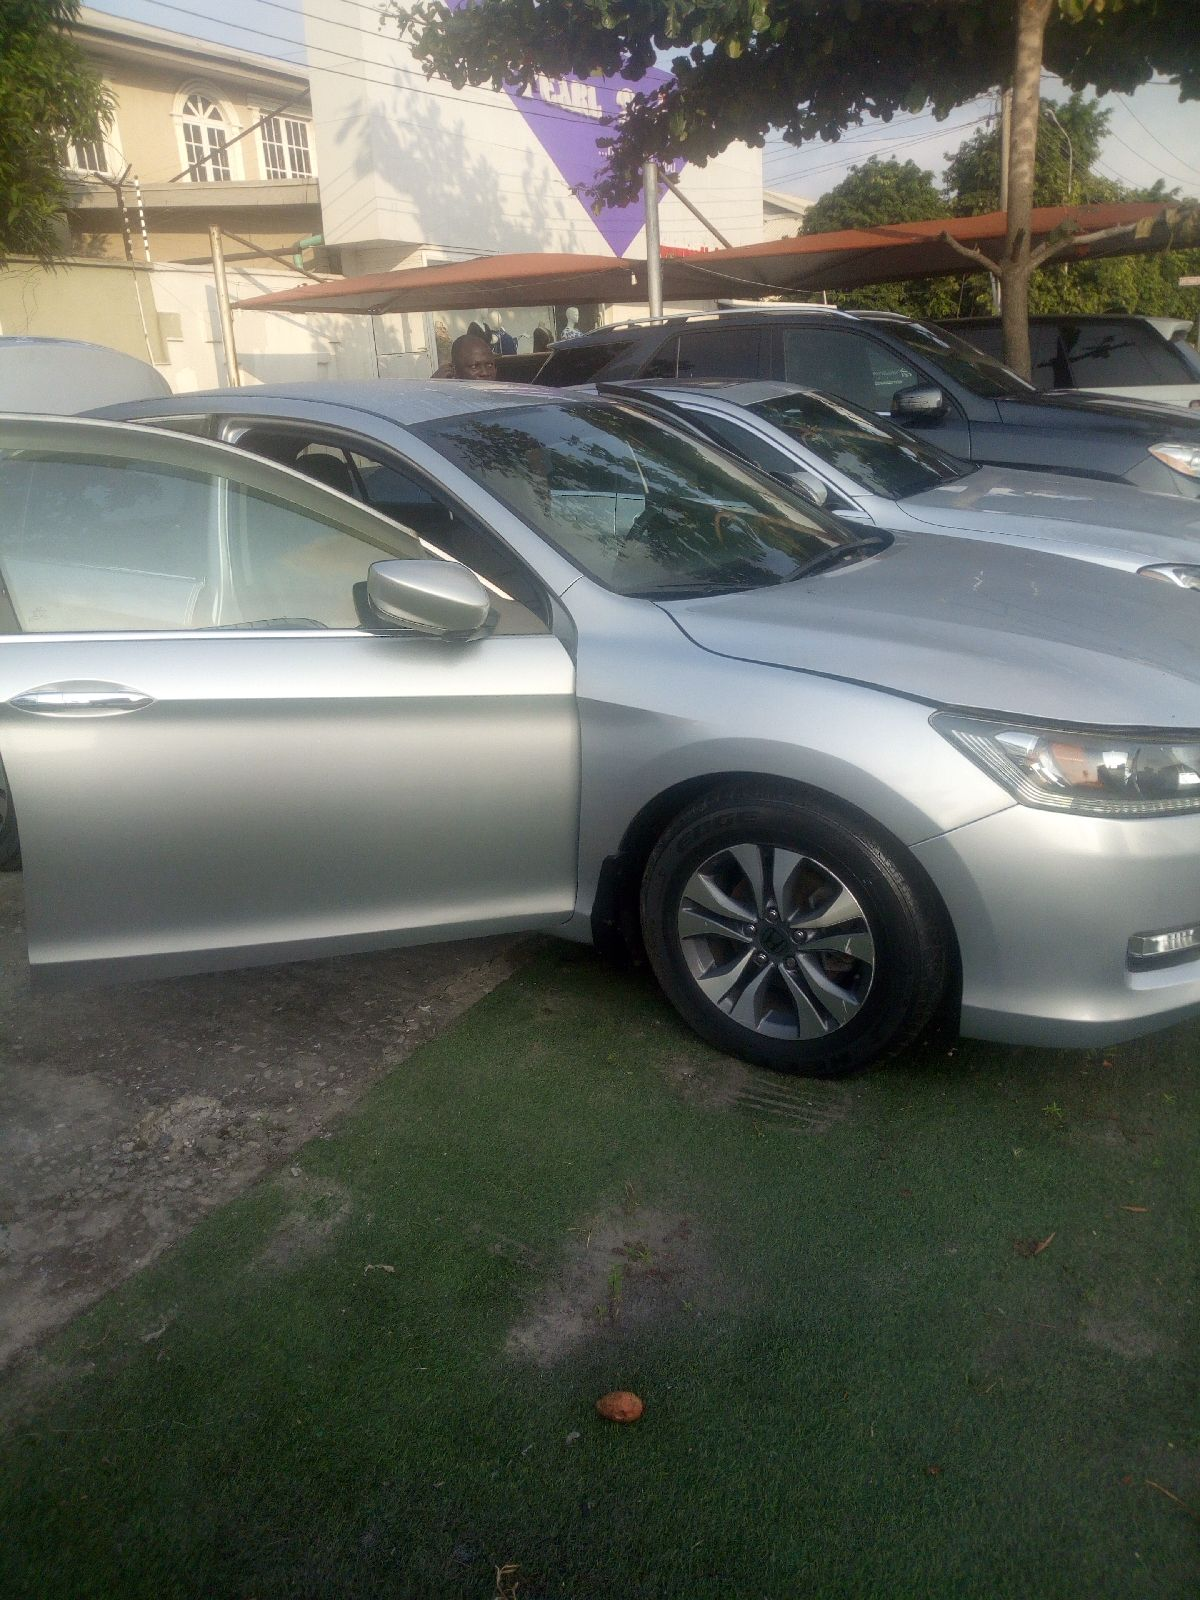 SMART RIDES HONDA ACCORD 2012 FOREIGN USED CAR FOR SALE